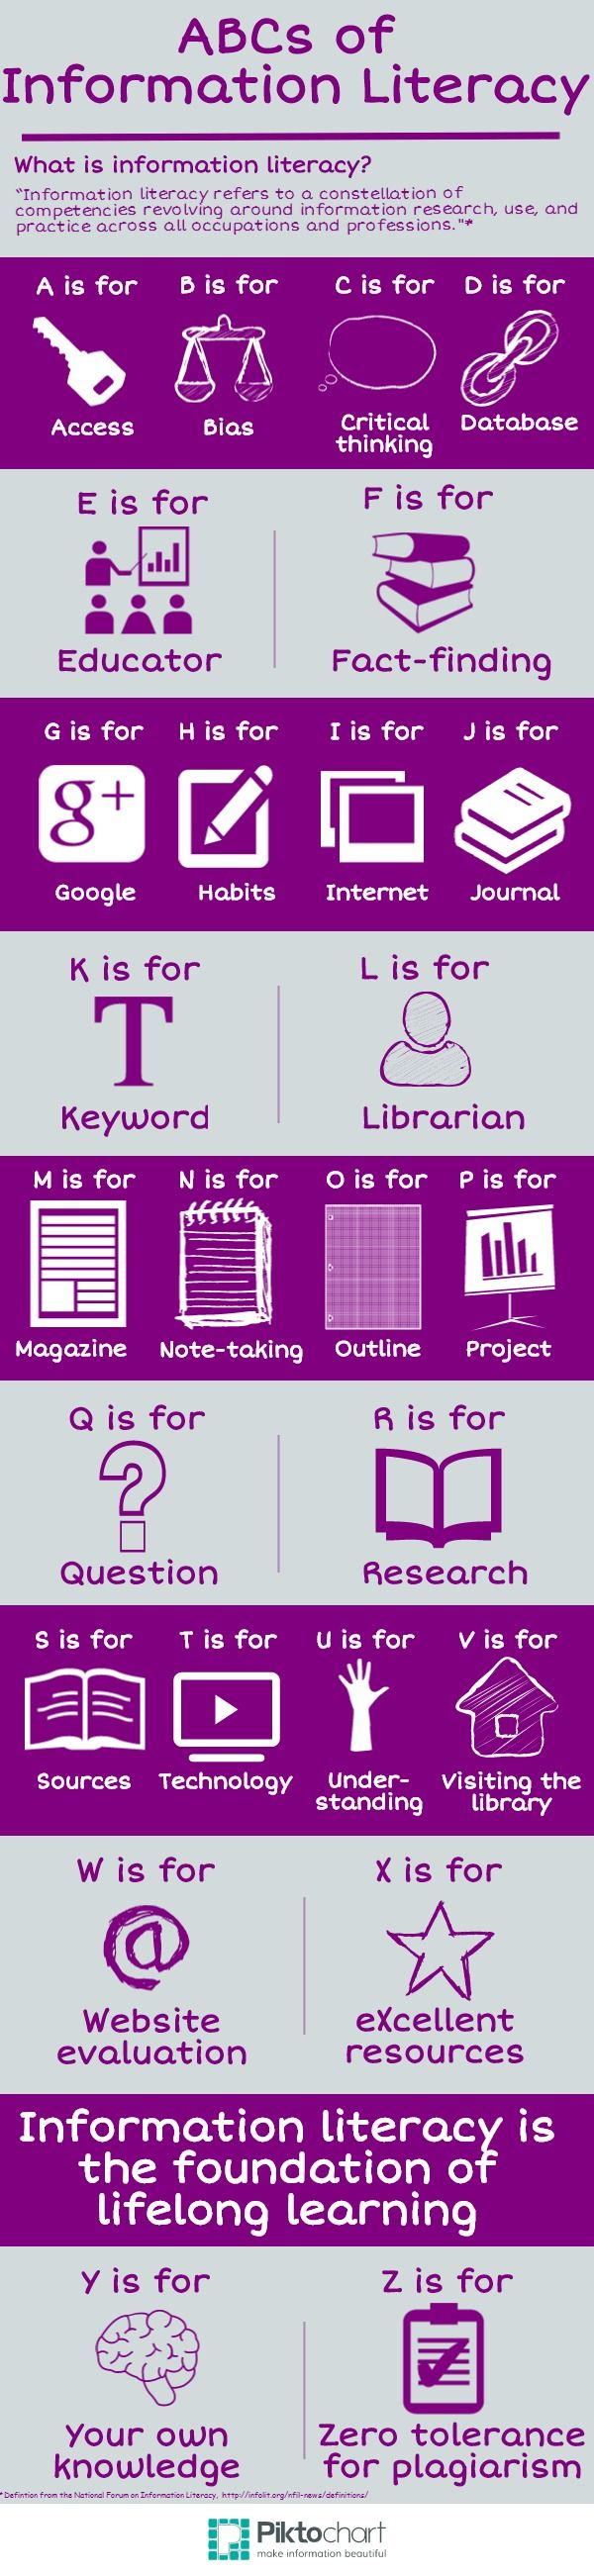 The ABCs of Information Literacy Infographic | e-Learning Infographics